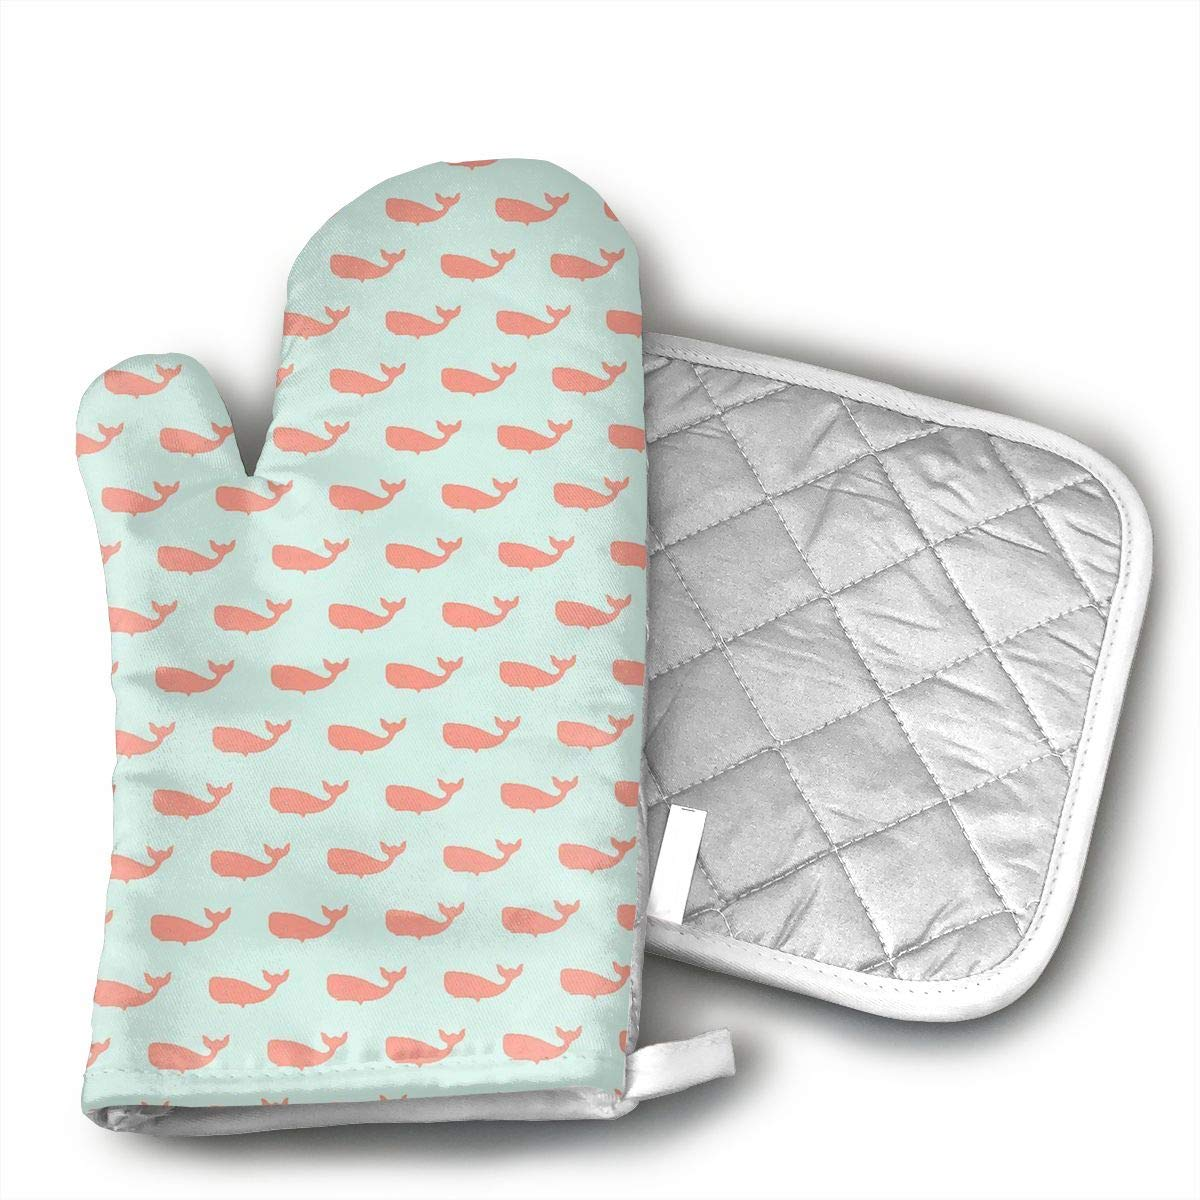 Preppy Whale Spa Heat Resistant Kitchen Oven Mitt with Non-Slip Printed, Set of 2 Oven Gloves for BBQ Cooking Baking, Grilling, Barbecue,Microwave, Machine Washable.